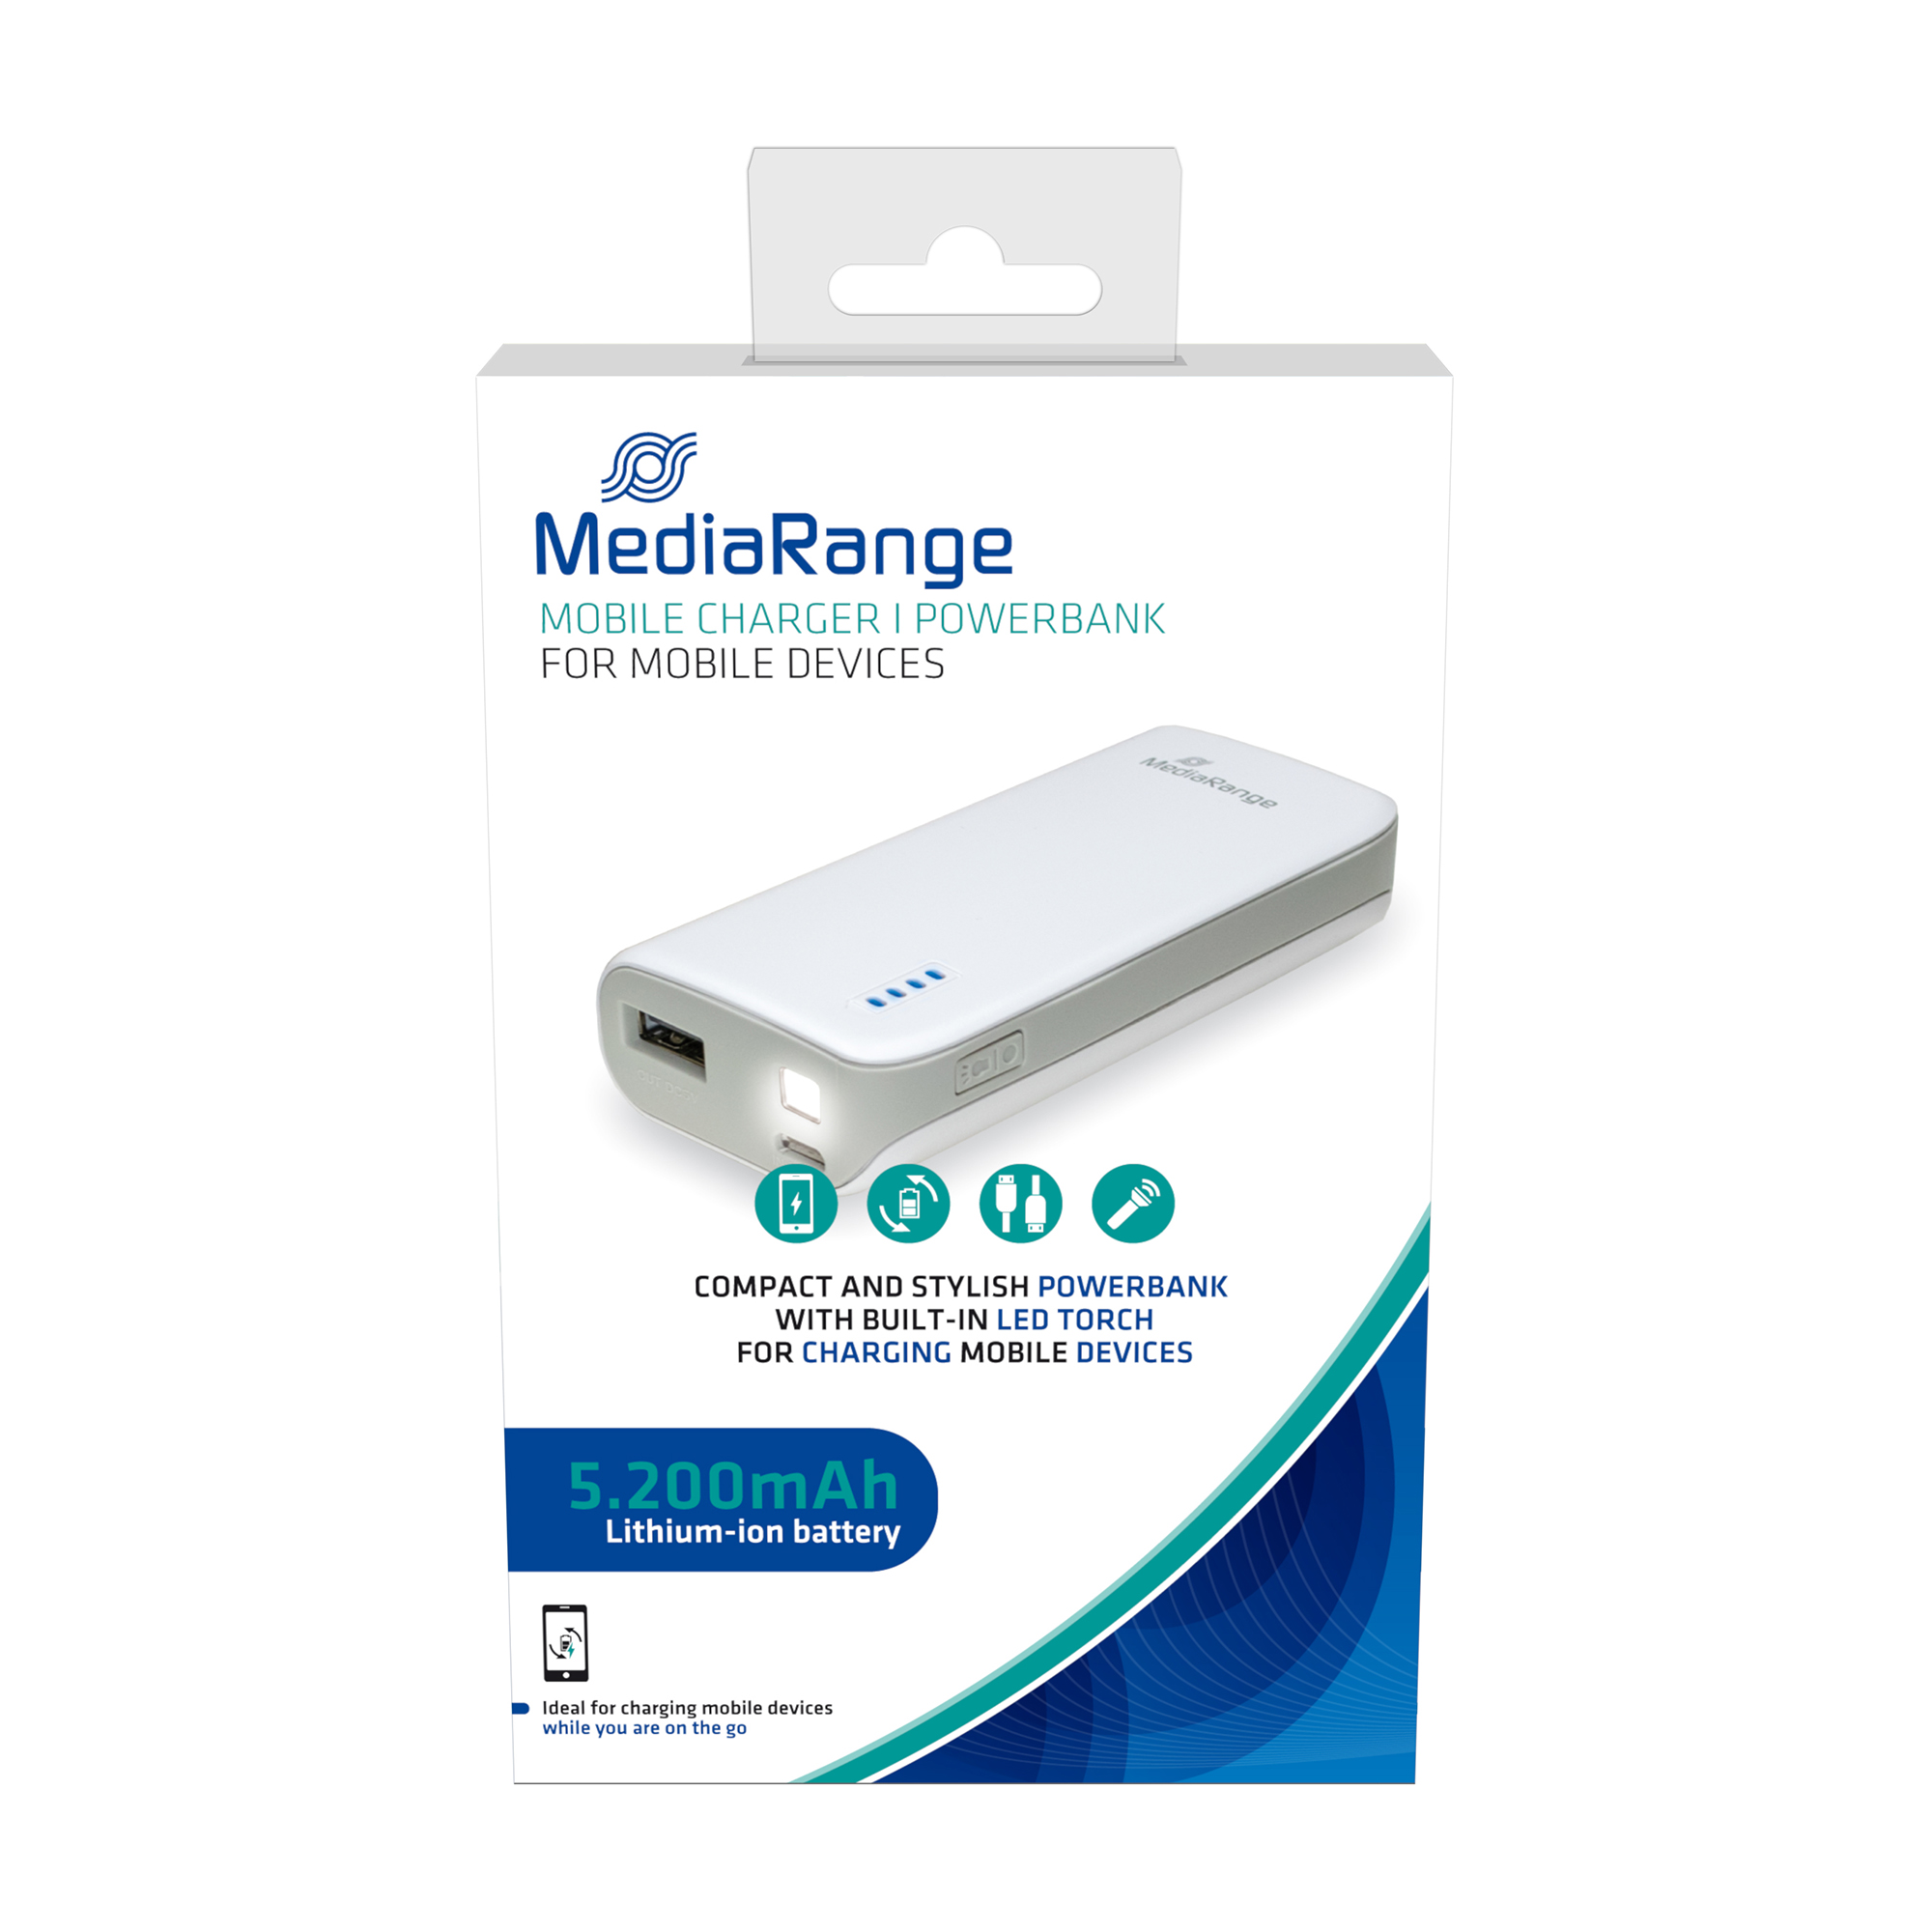 Rechargeable batteries MediaRange Powerbank With Built-in LED Torch 5200 mAh Ref MR751